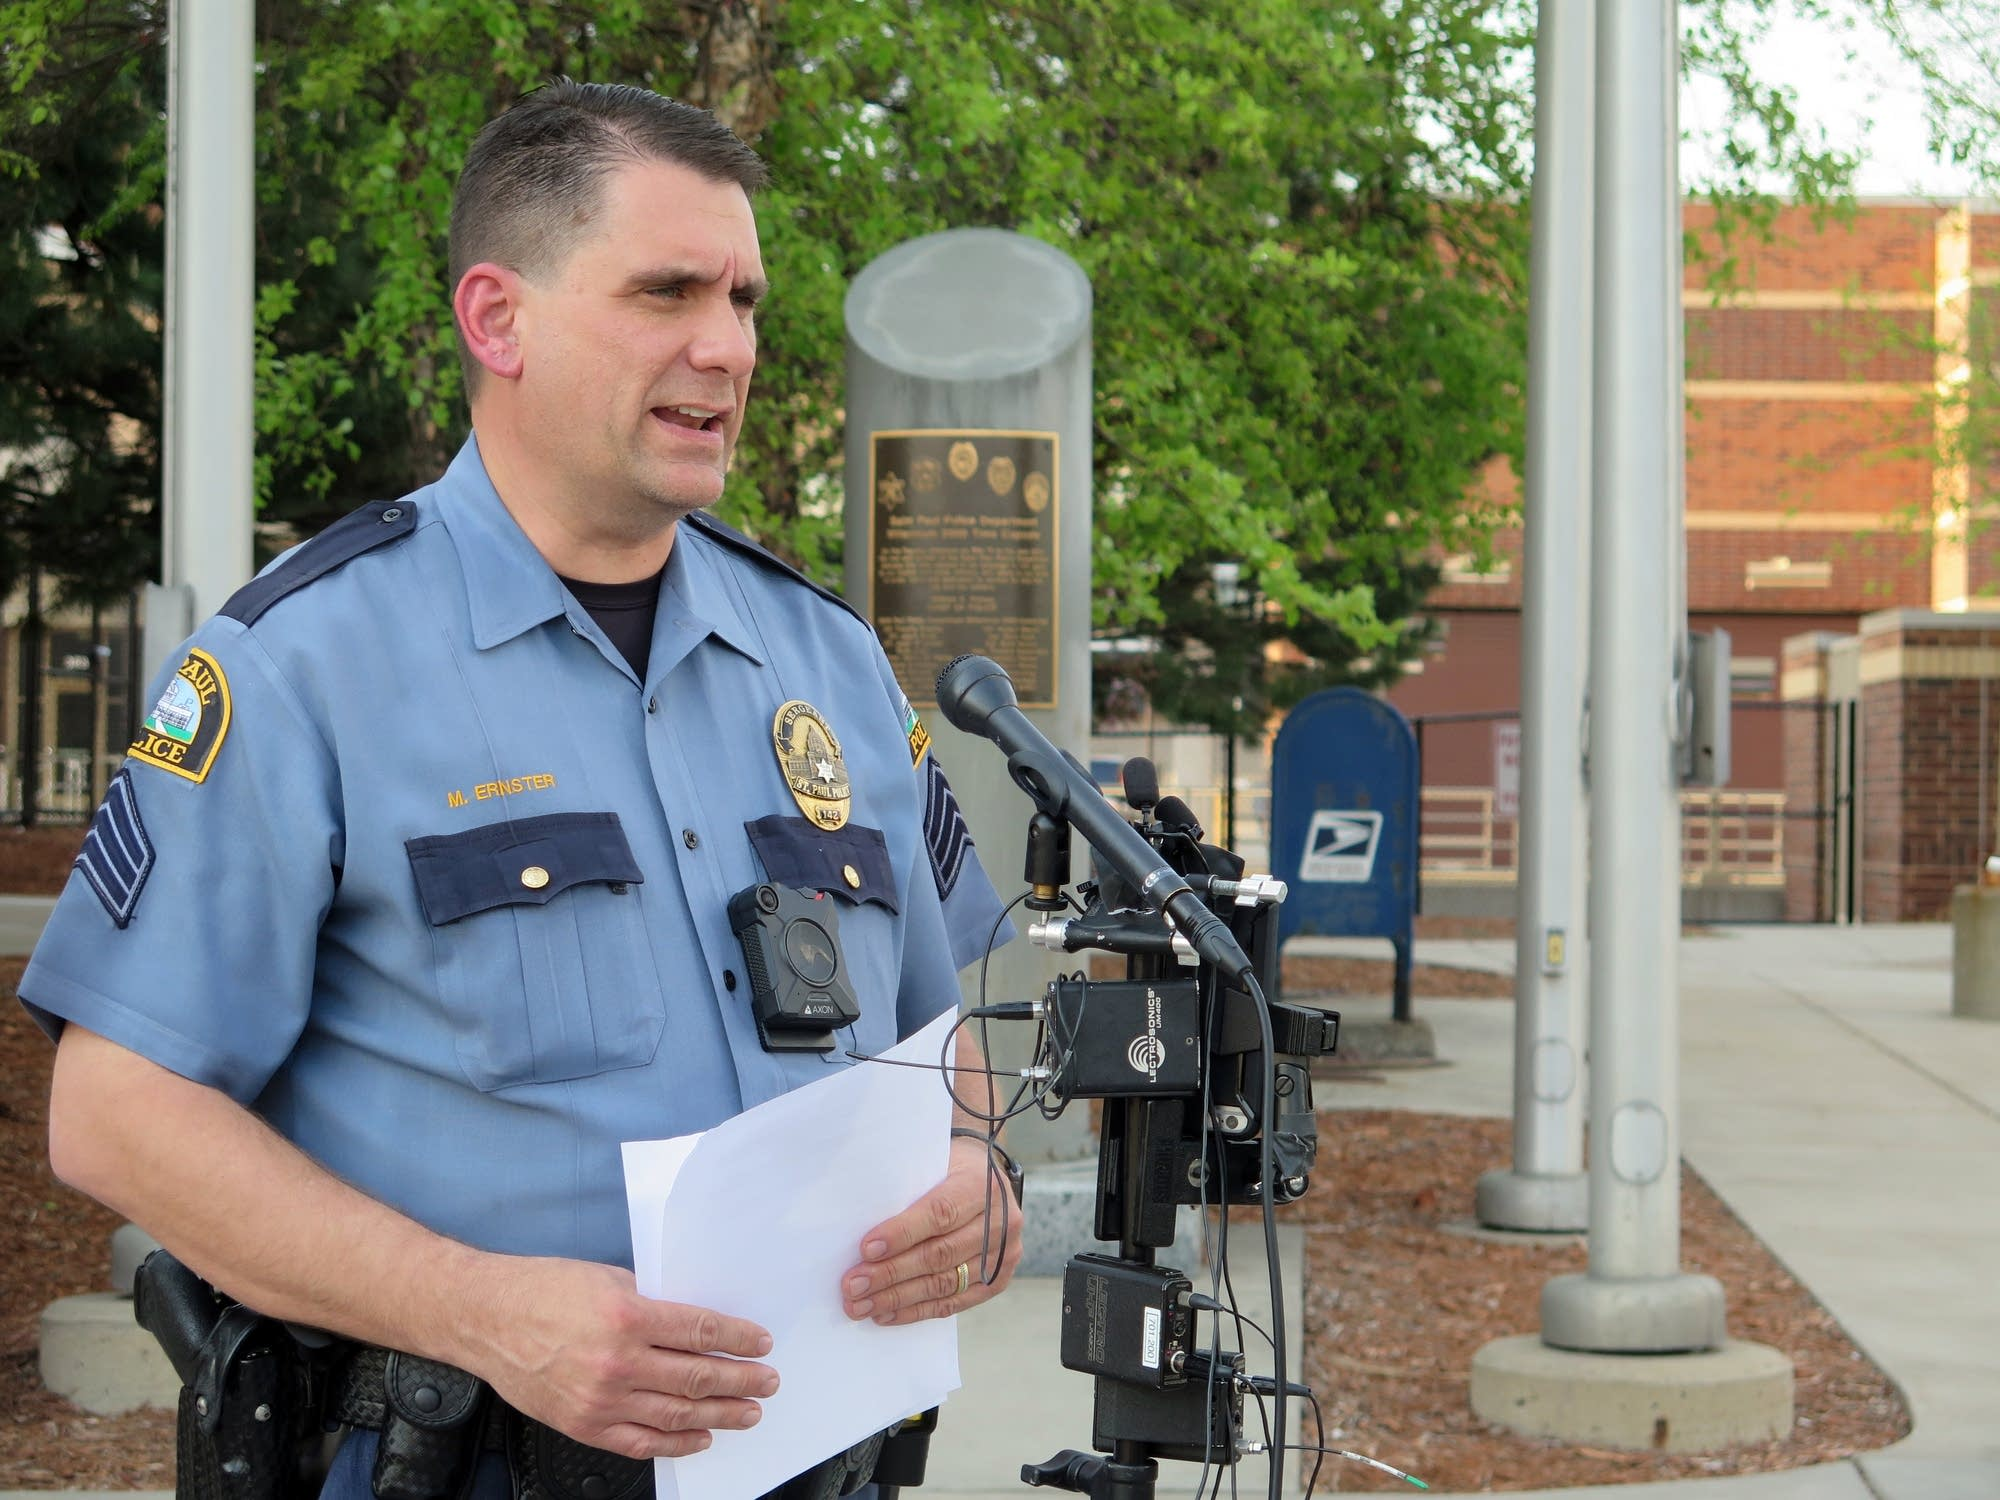 St. Paul Police Department spokesperson Sgt. Mike Ernster